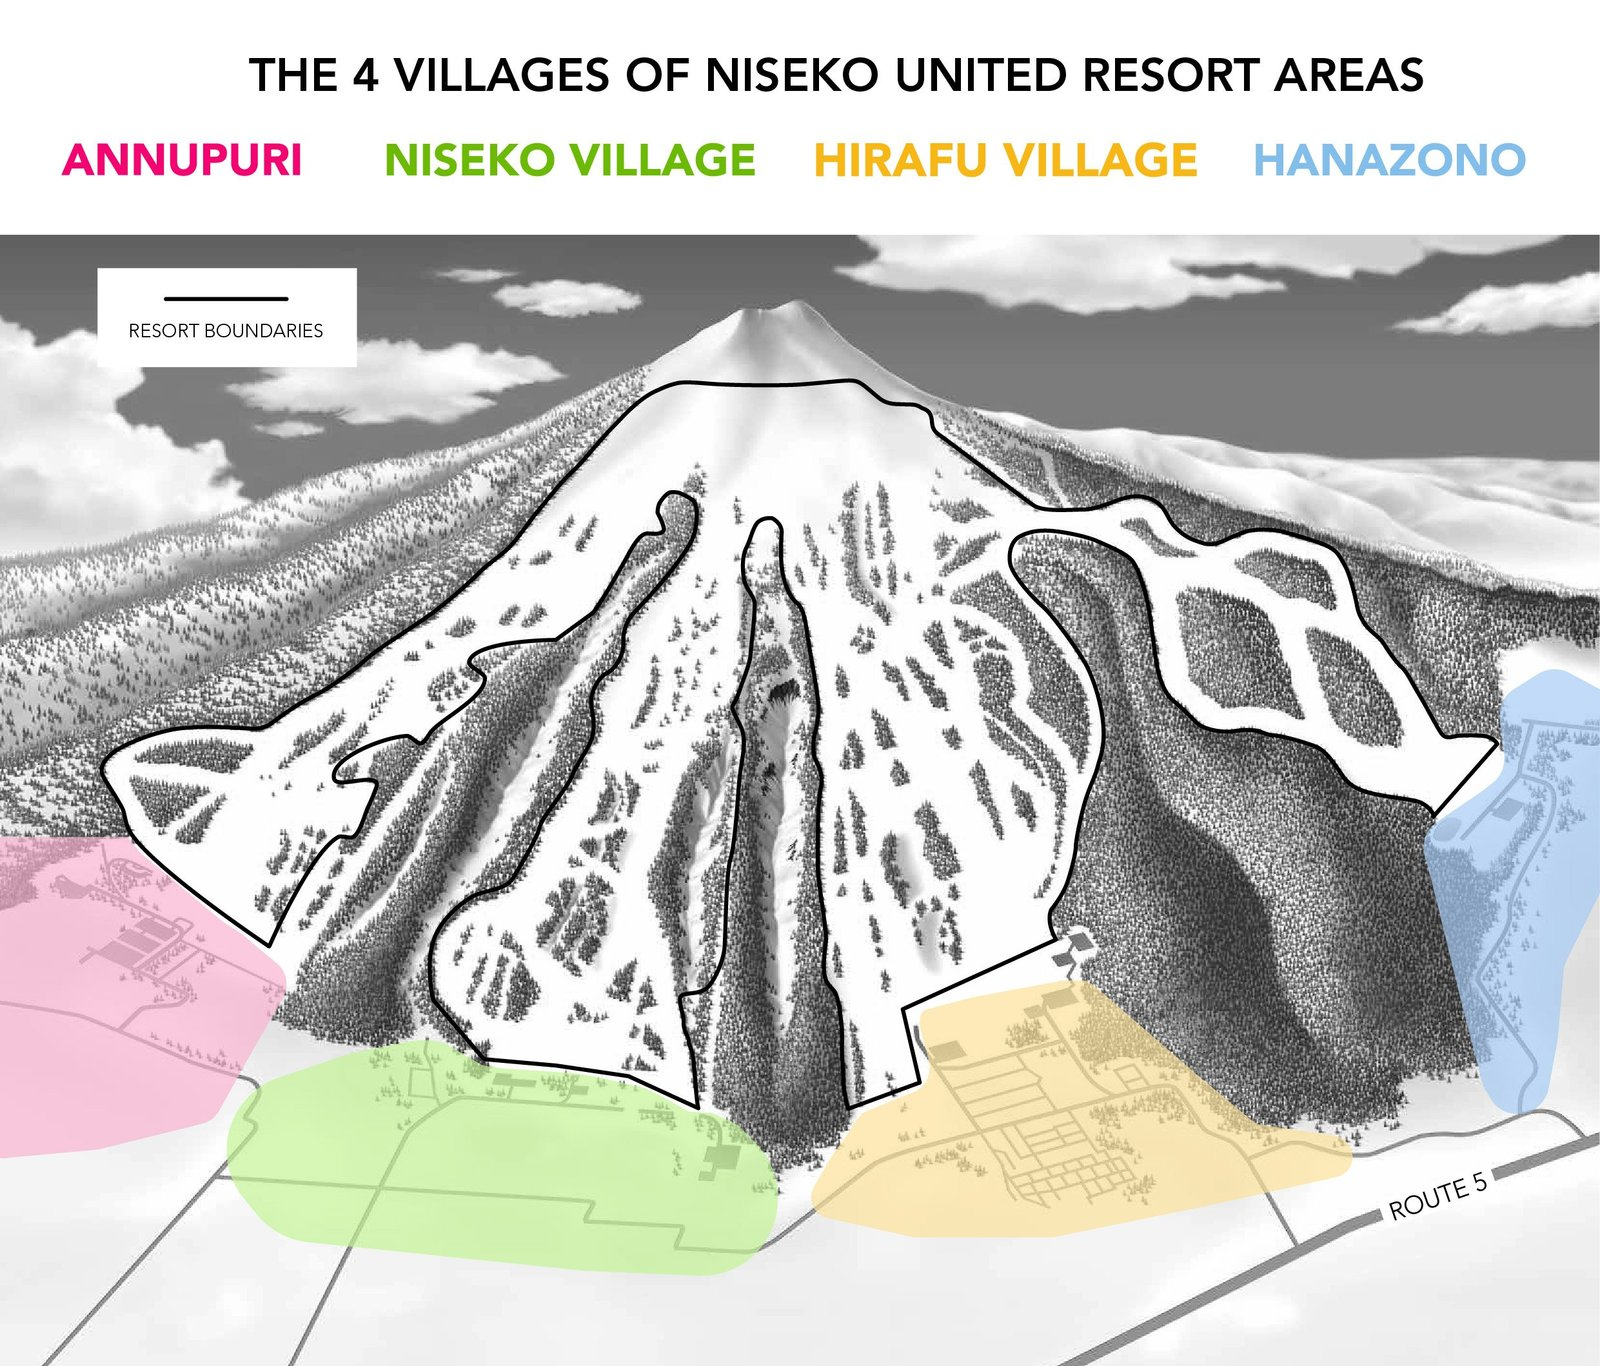 the village areas of the Niseko United ski resort area.